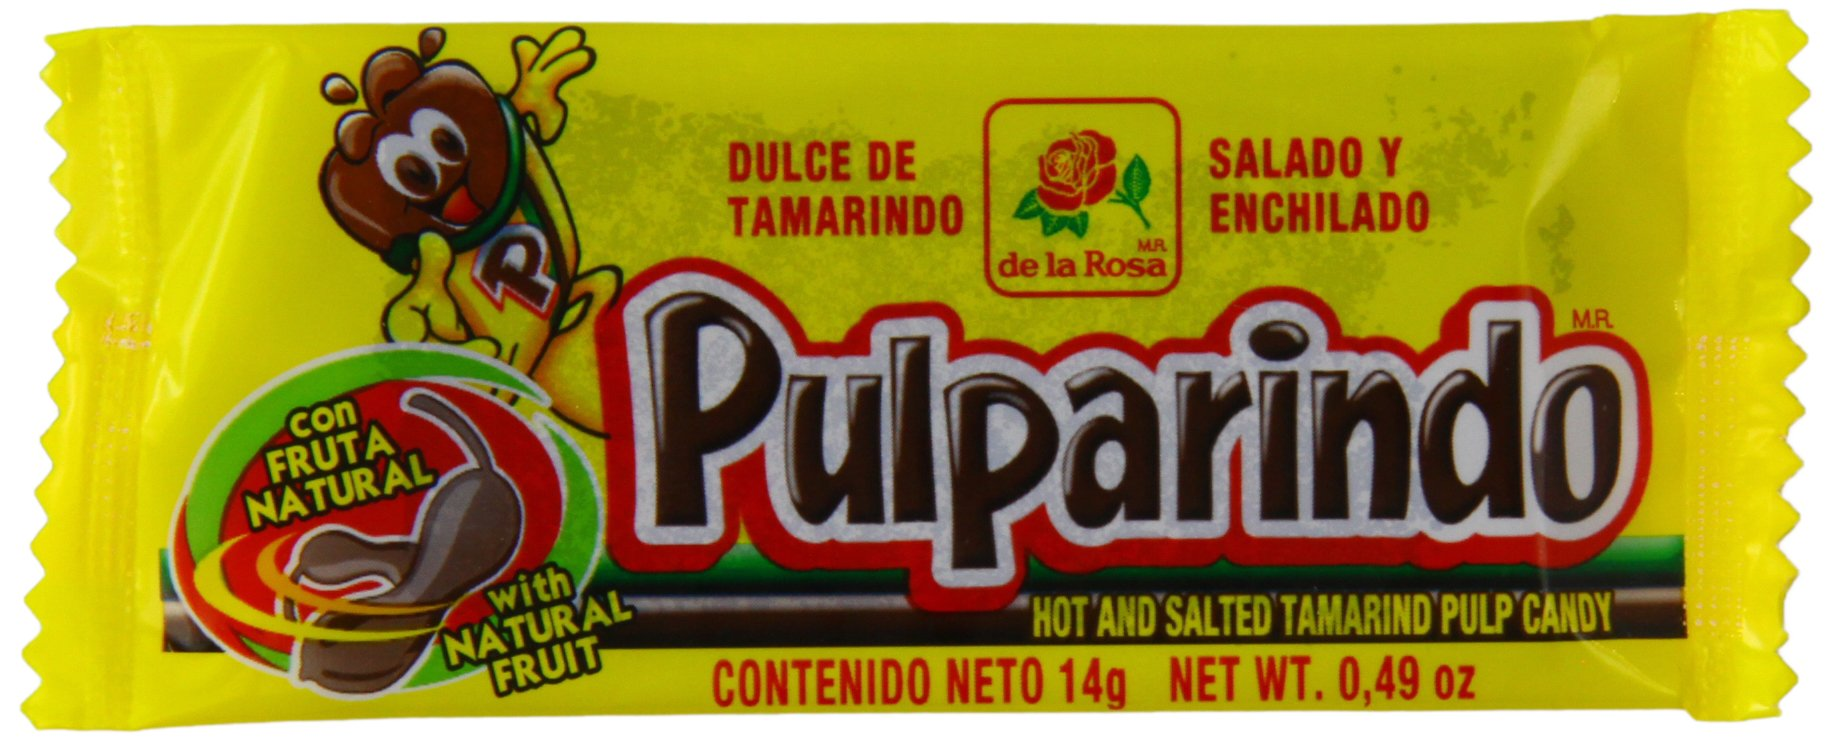 Pulparindo Hot and Salted Tamarind Pulp Candy 14g (Pack of 20)